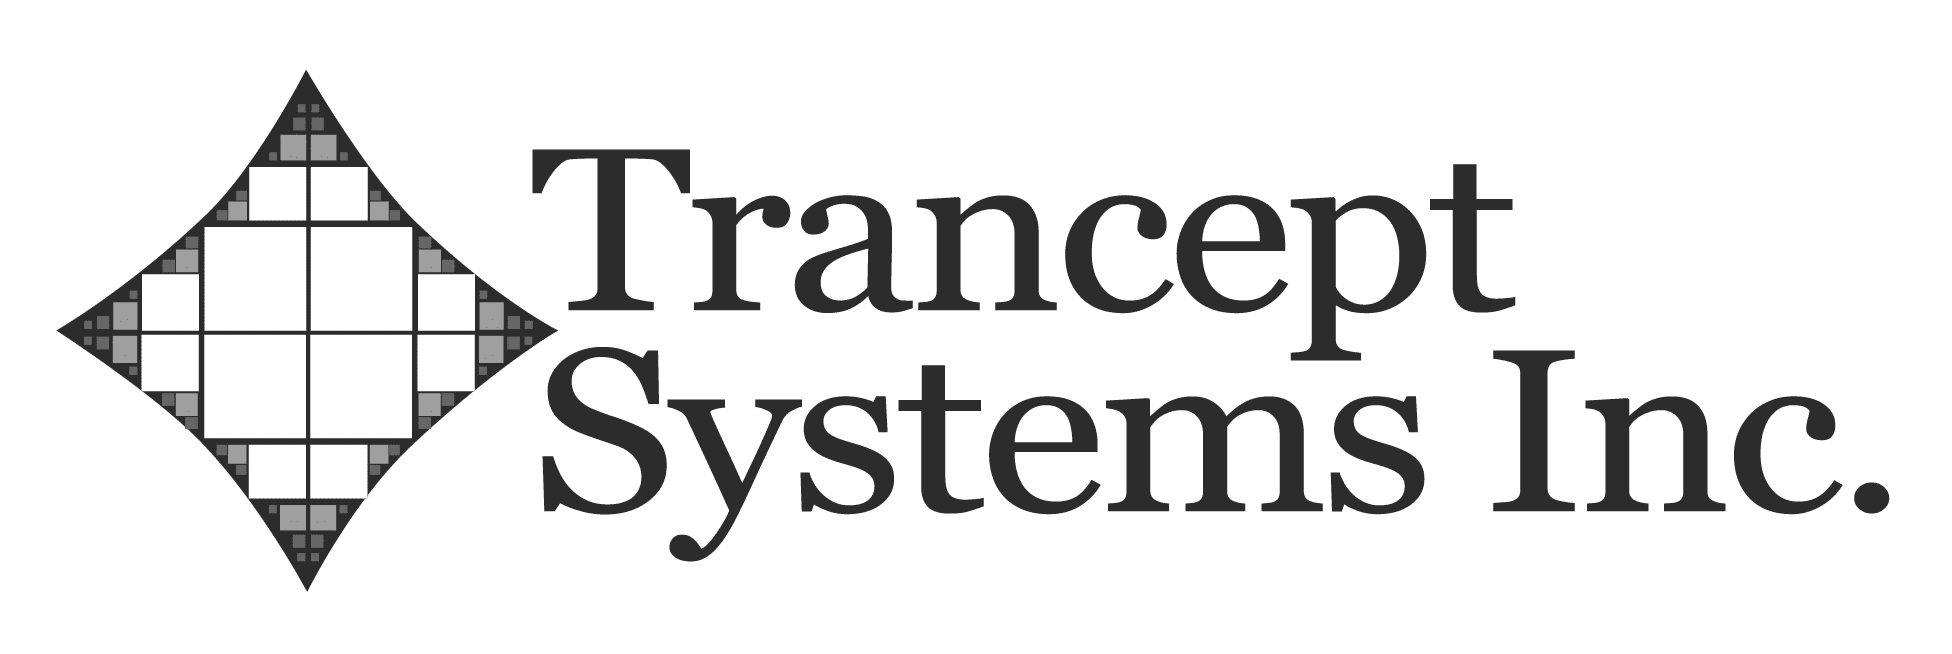 Trancept Systems